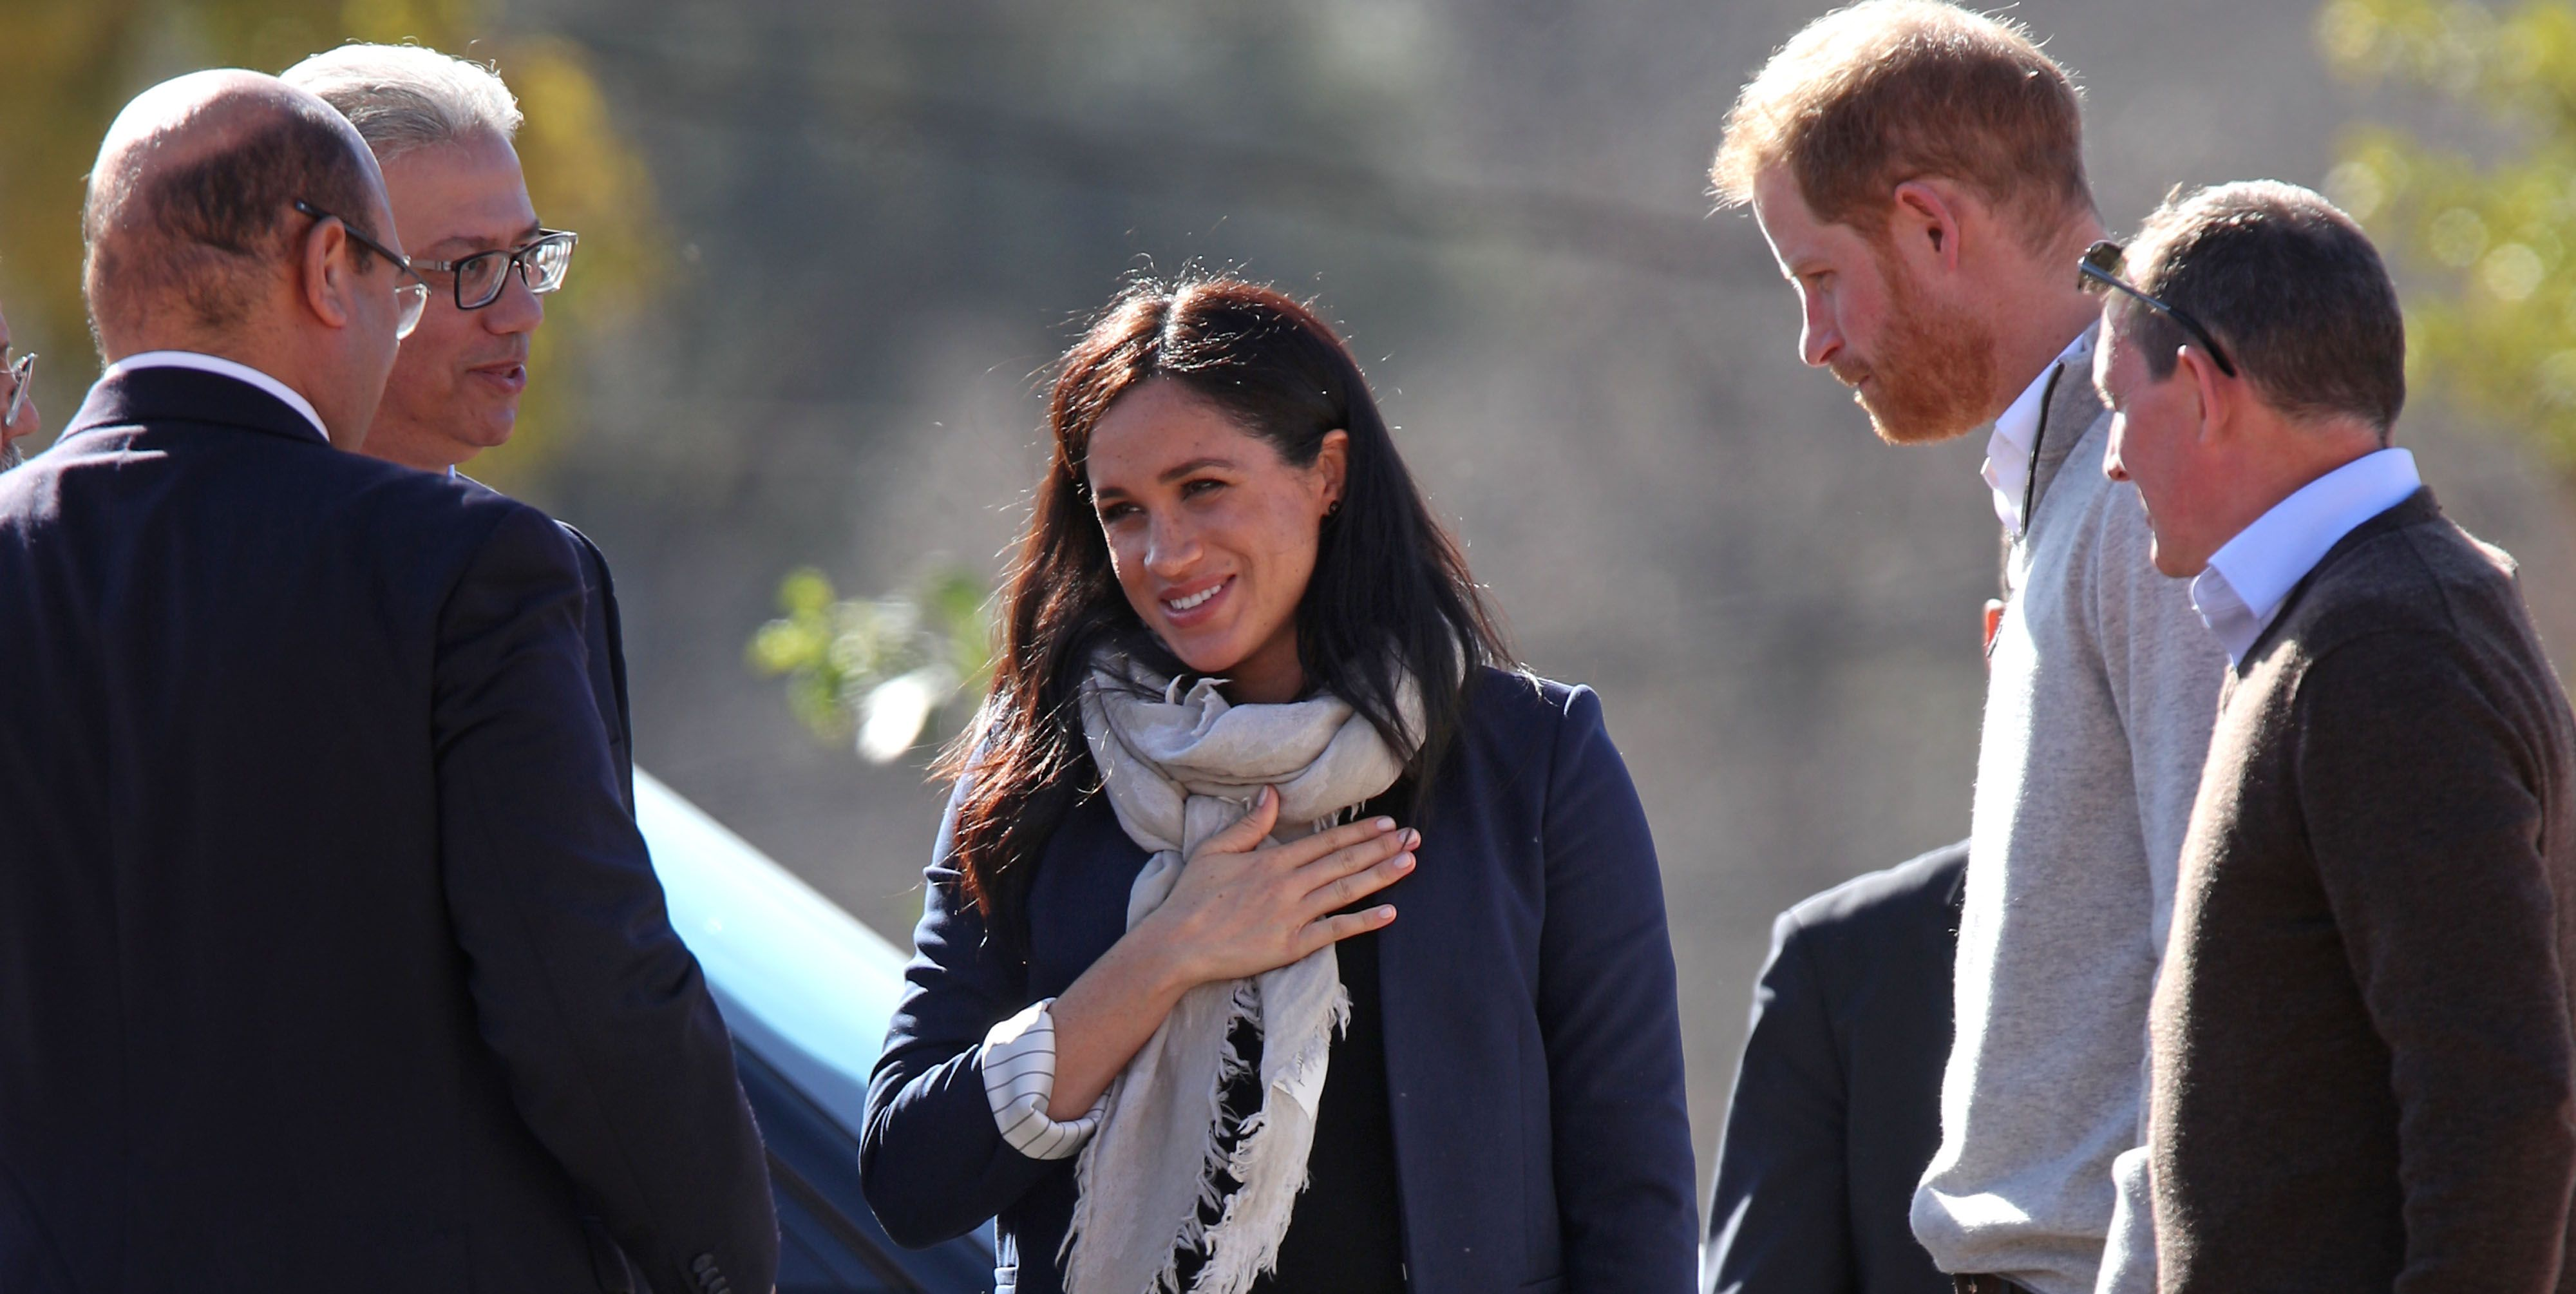 Duke and Duchess of Sussex visit to Morocco - Day 2